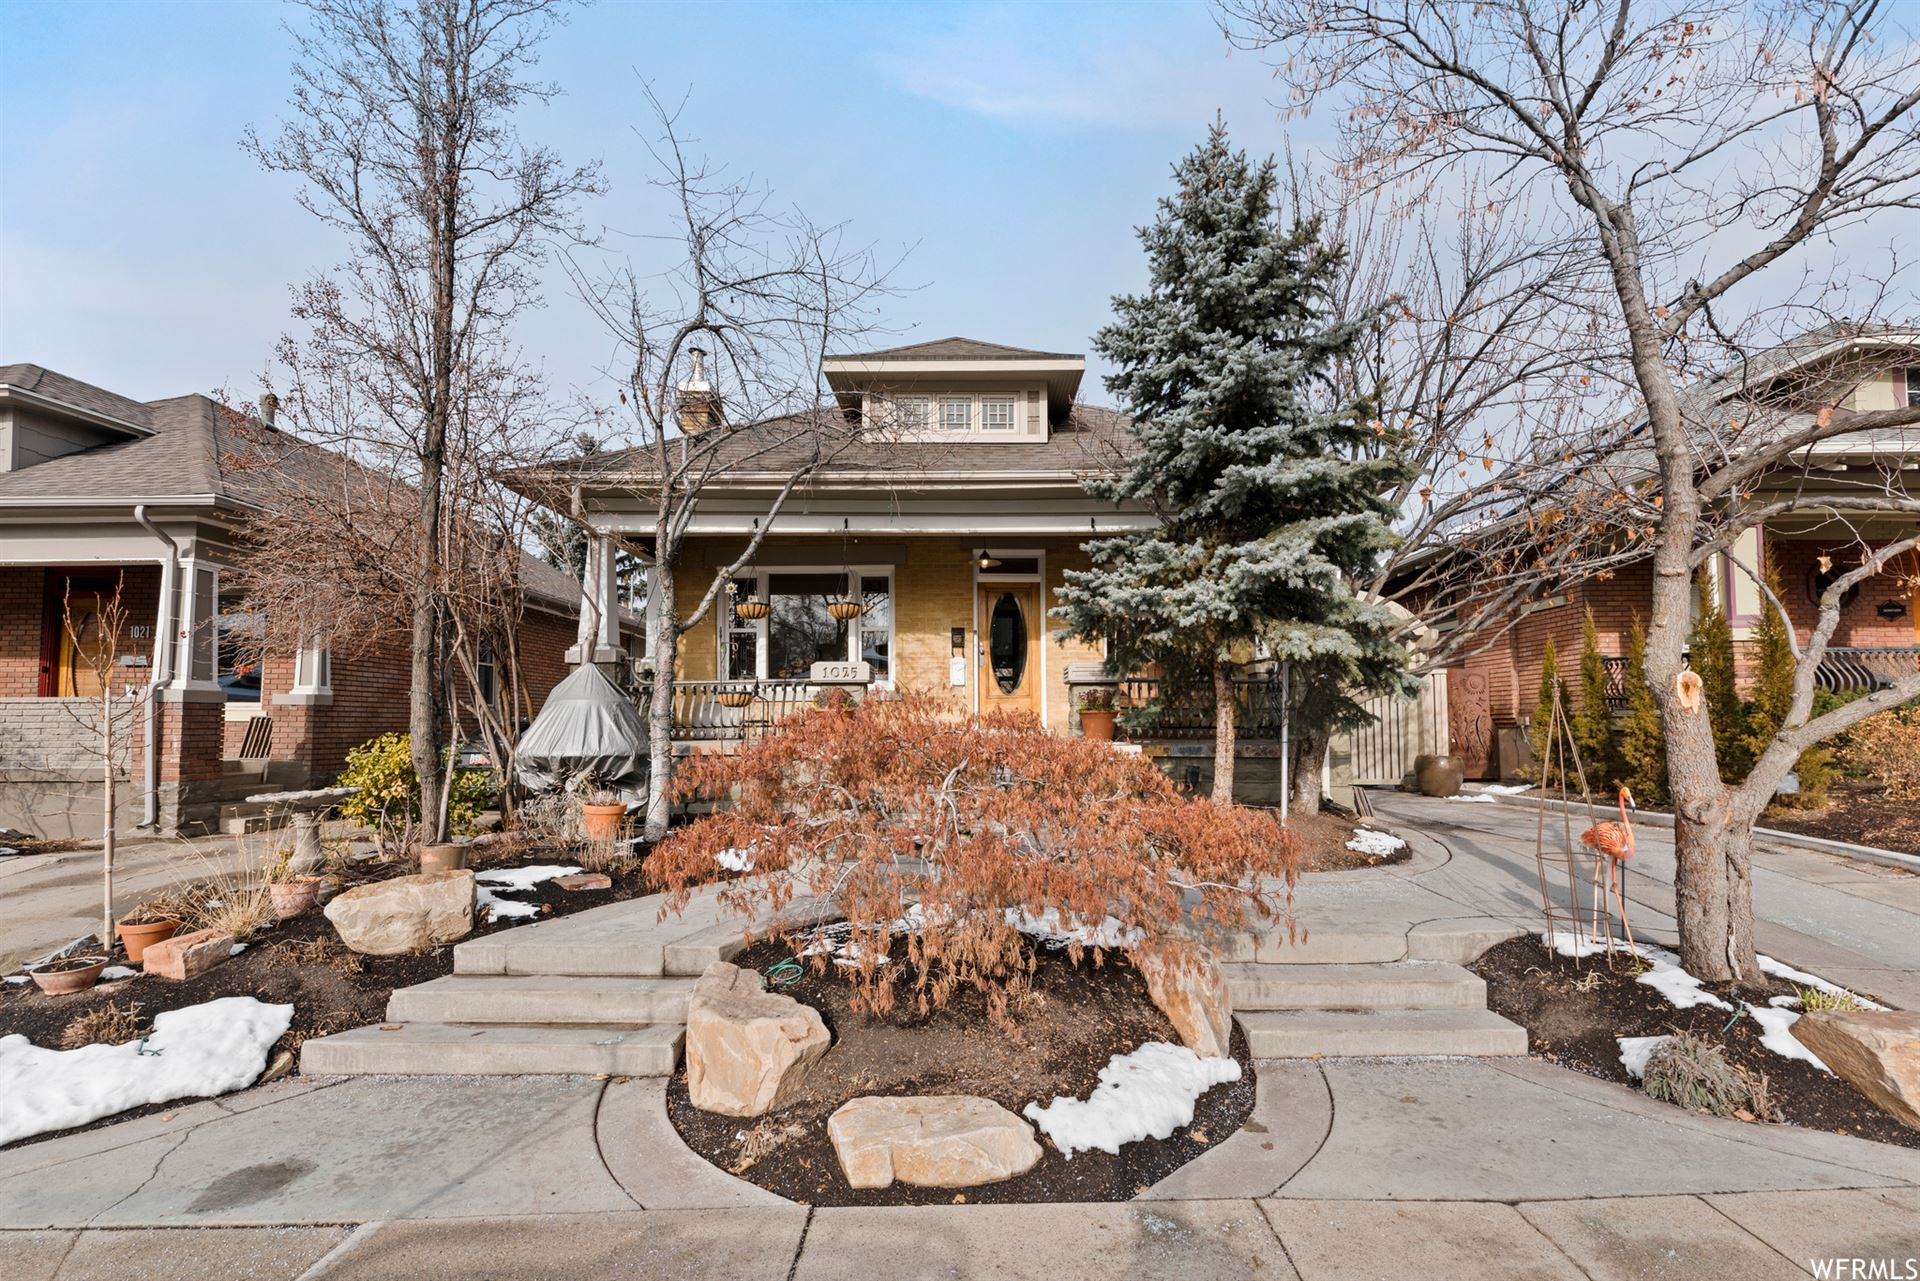 Photo of 1025 E HOLLYWOOD S AVE, Salt Lake City, UT 84105 (MLS # 1717170)